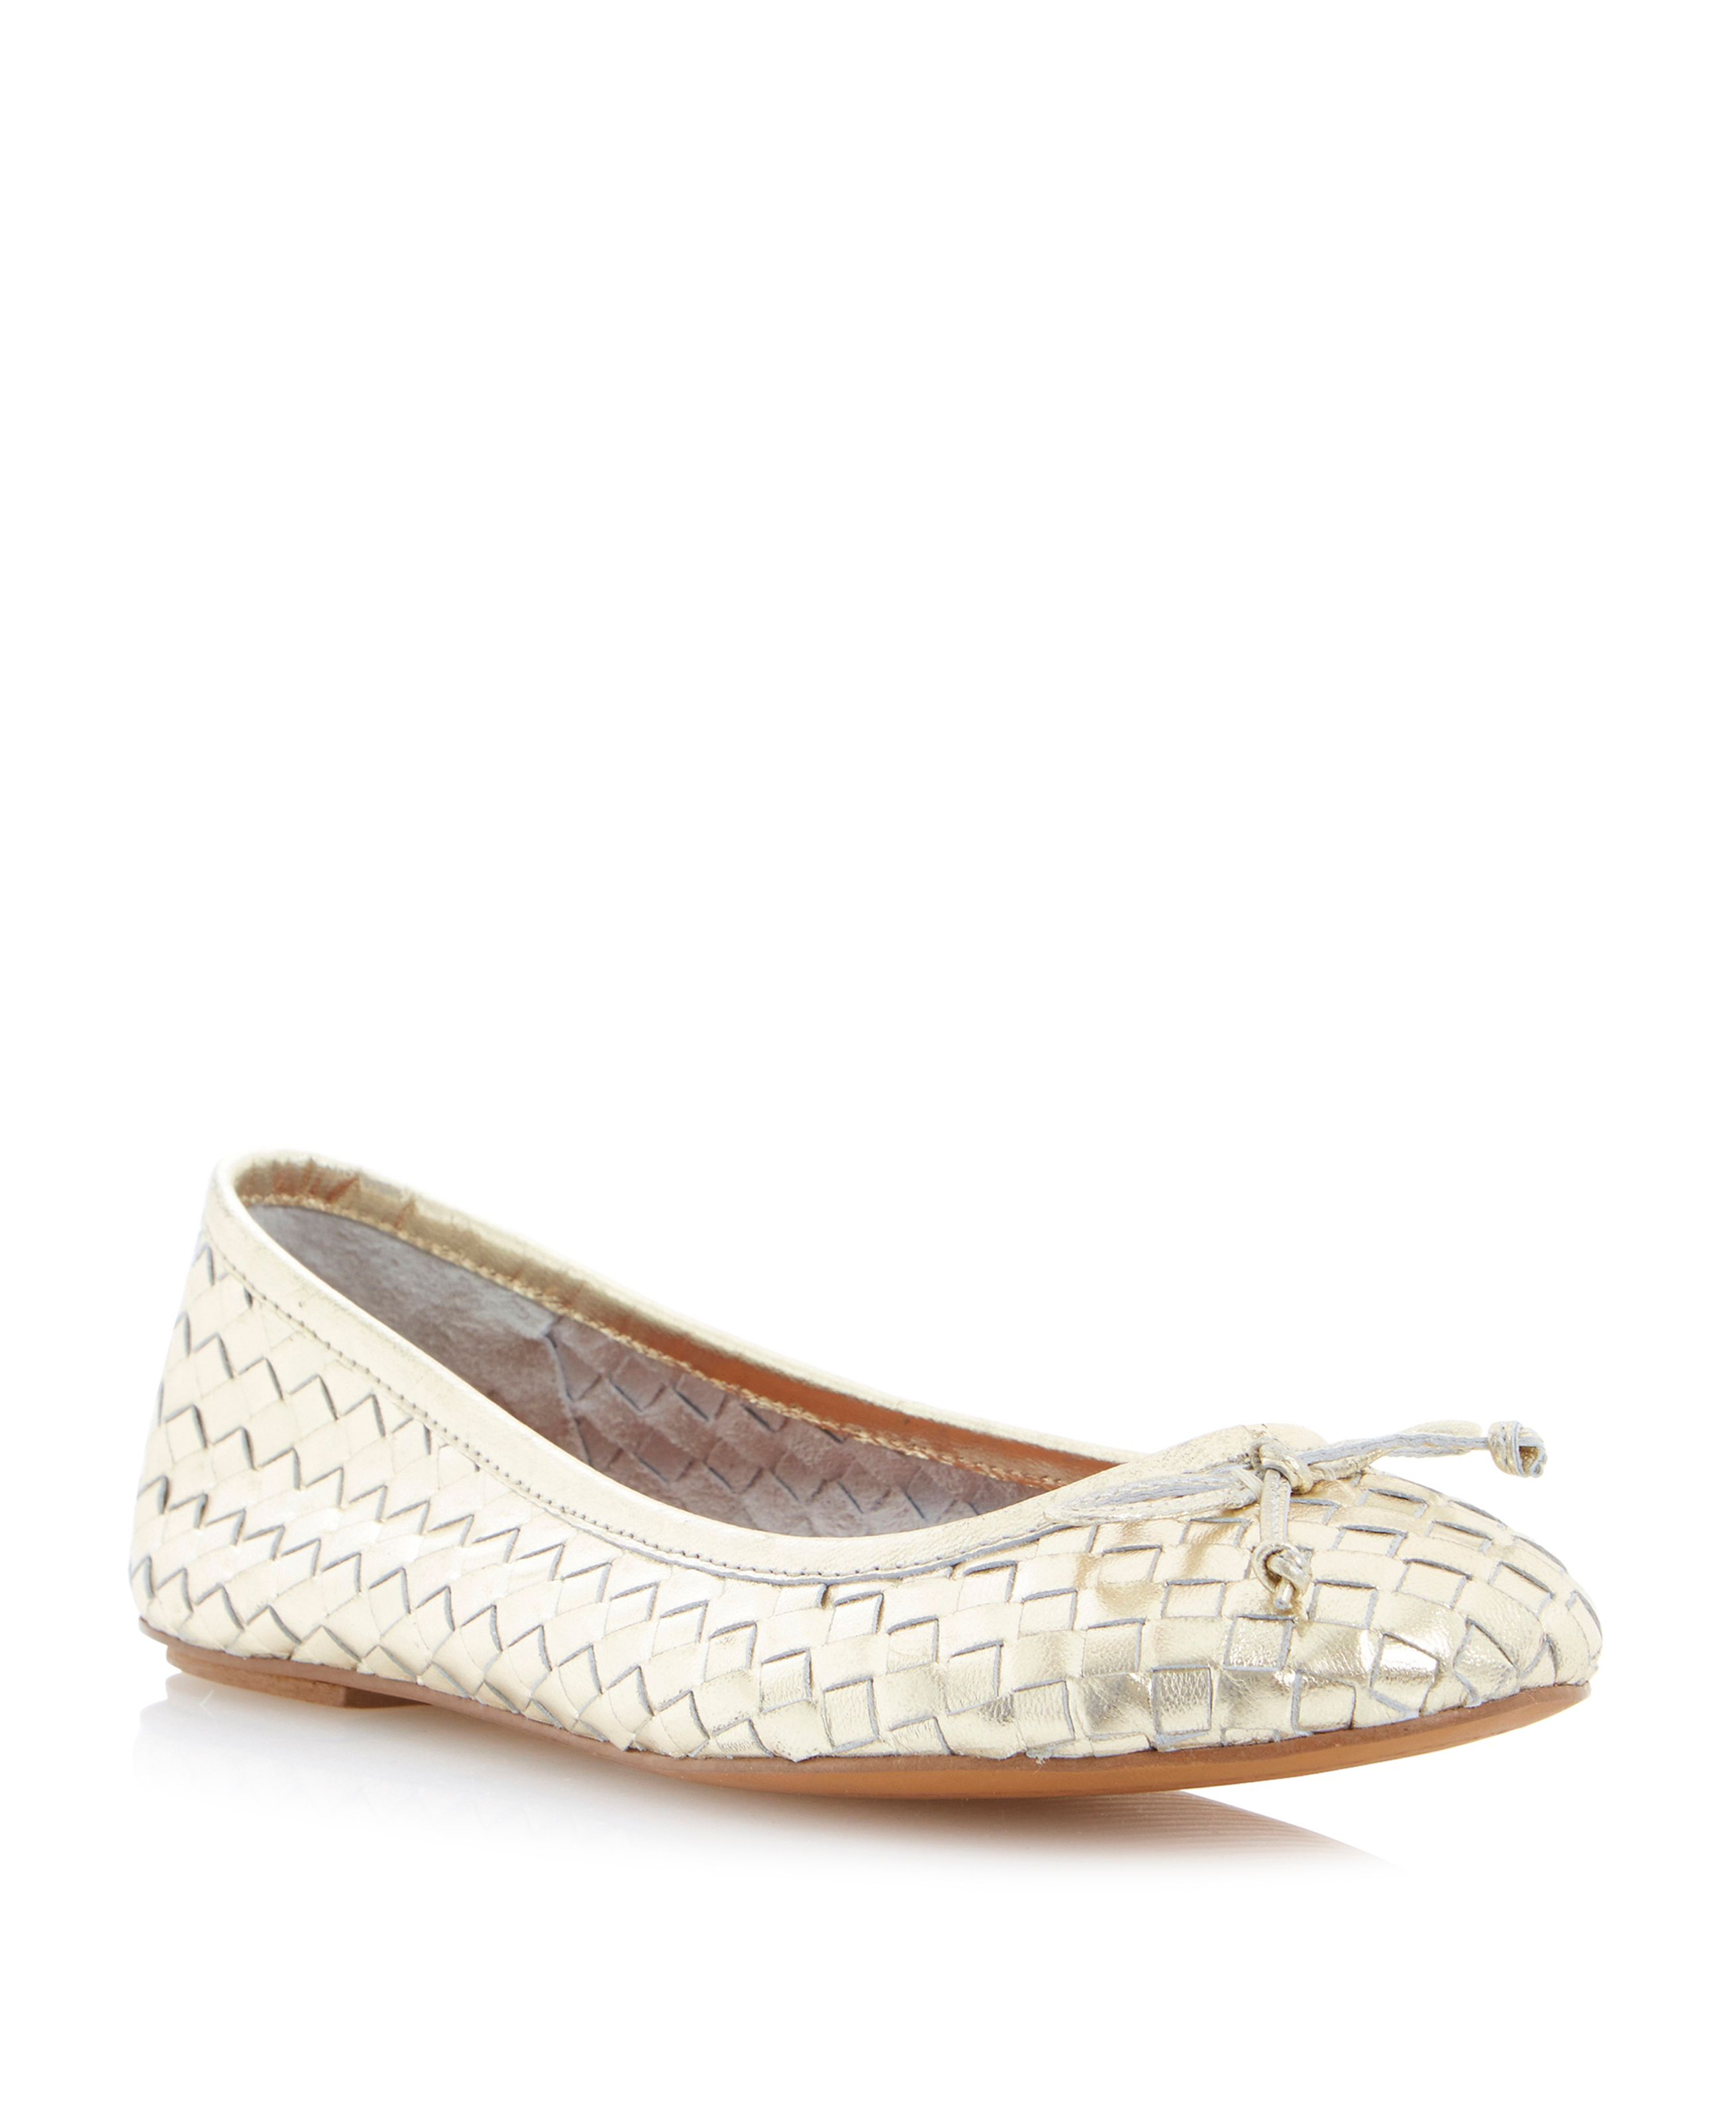 Medorra leather woven ballerinas